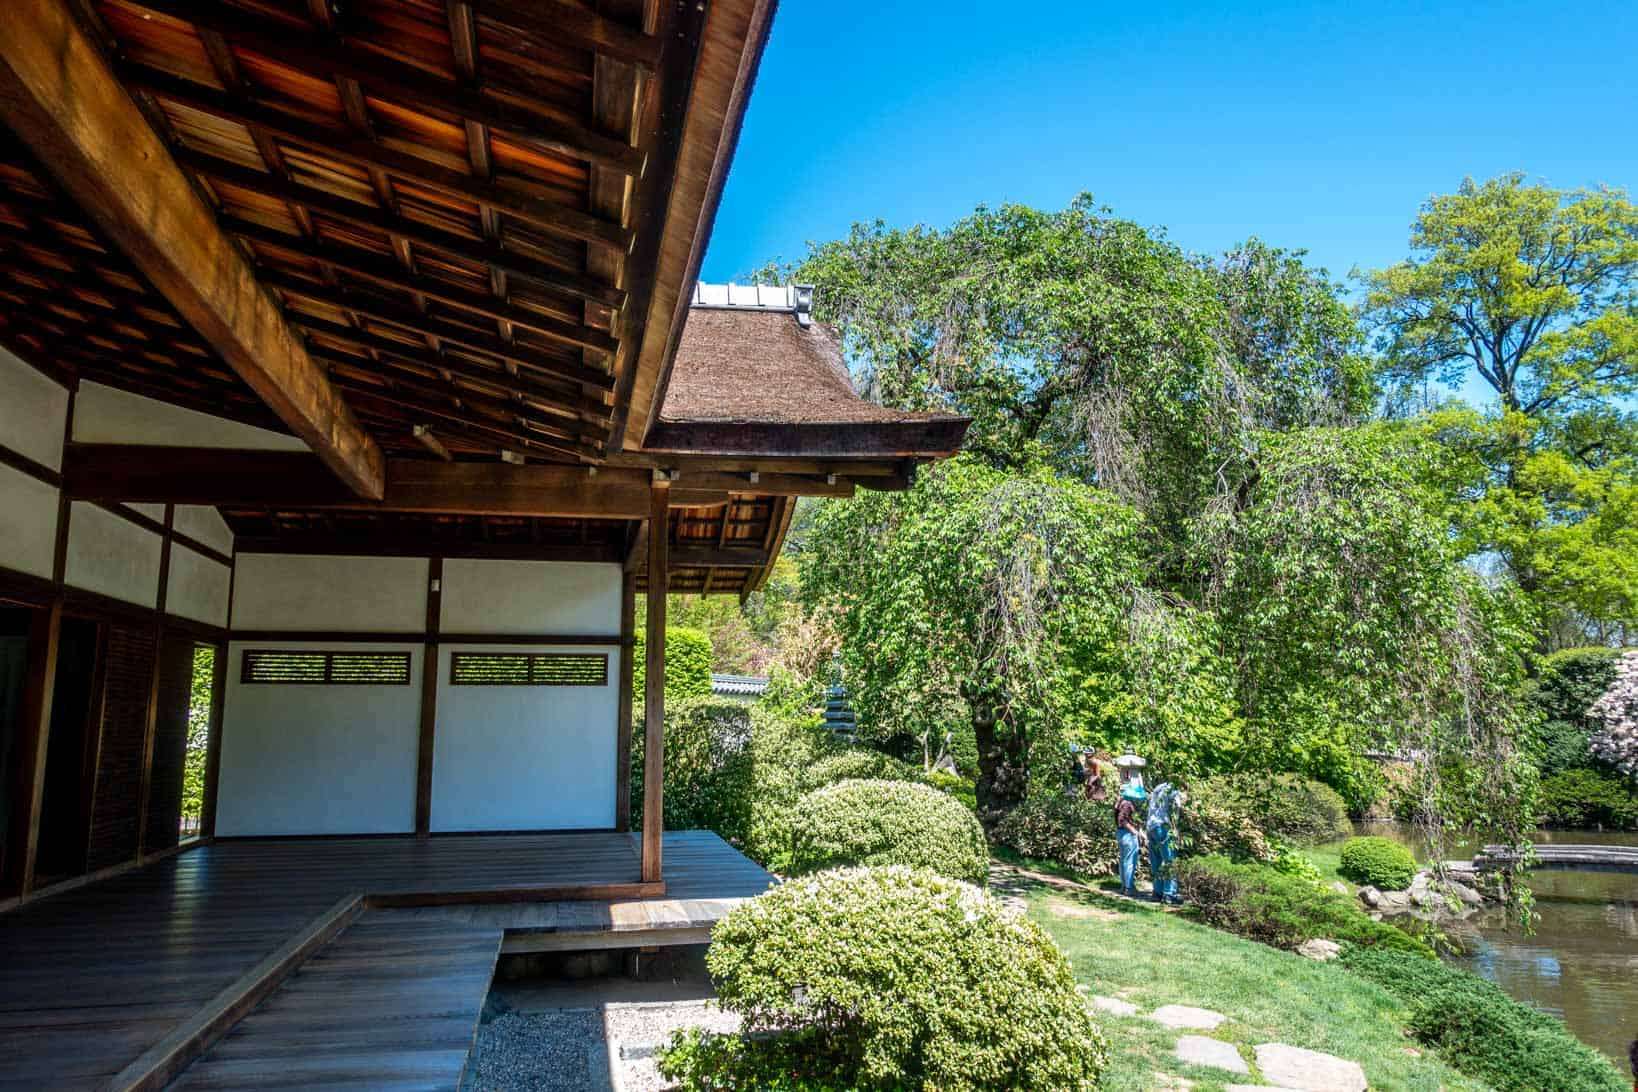 Side view of veranda on a Japanese house